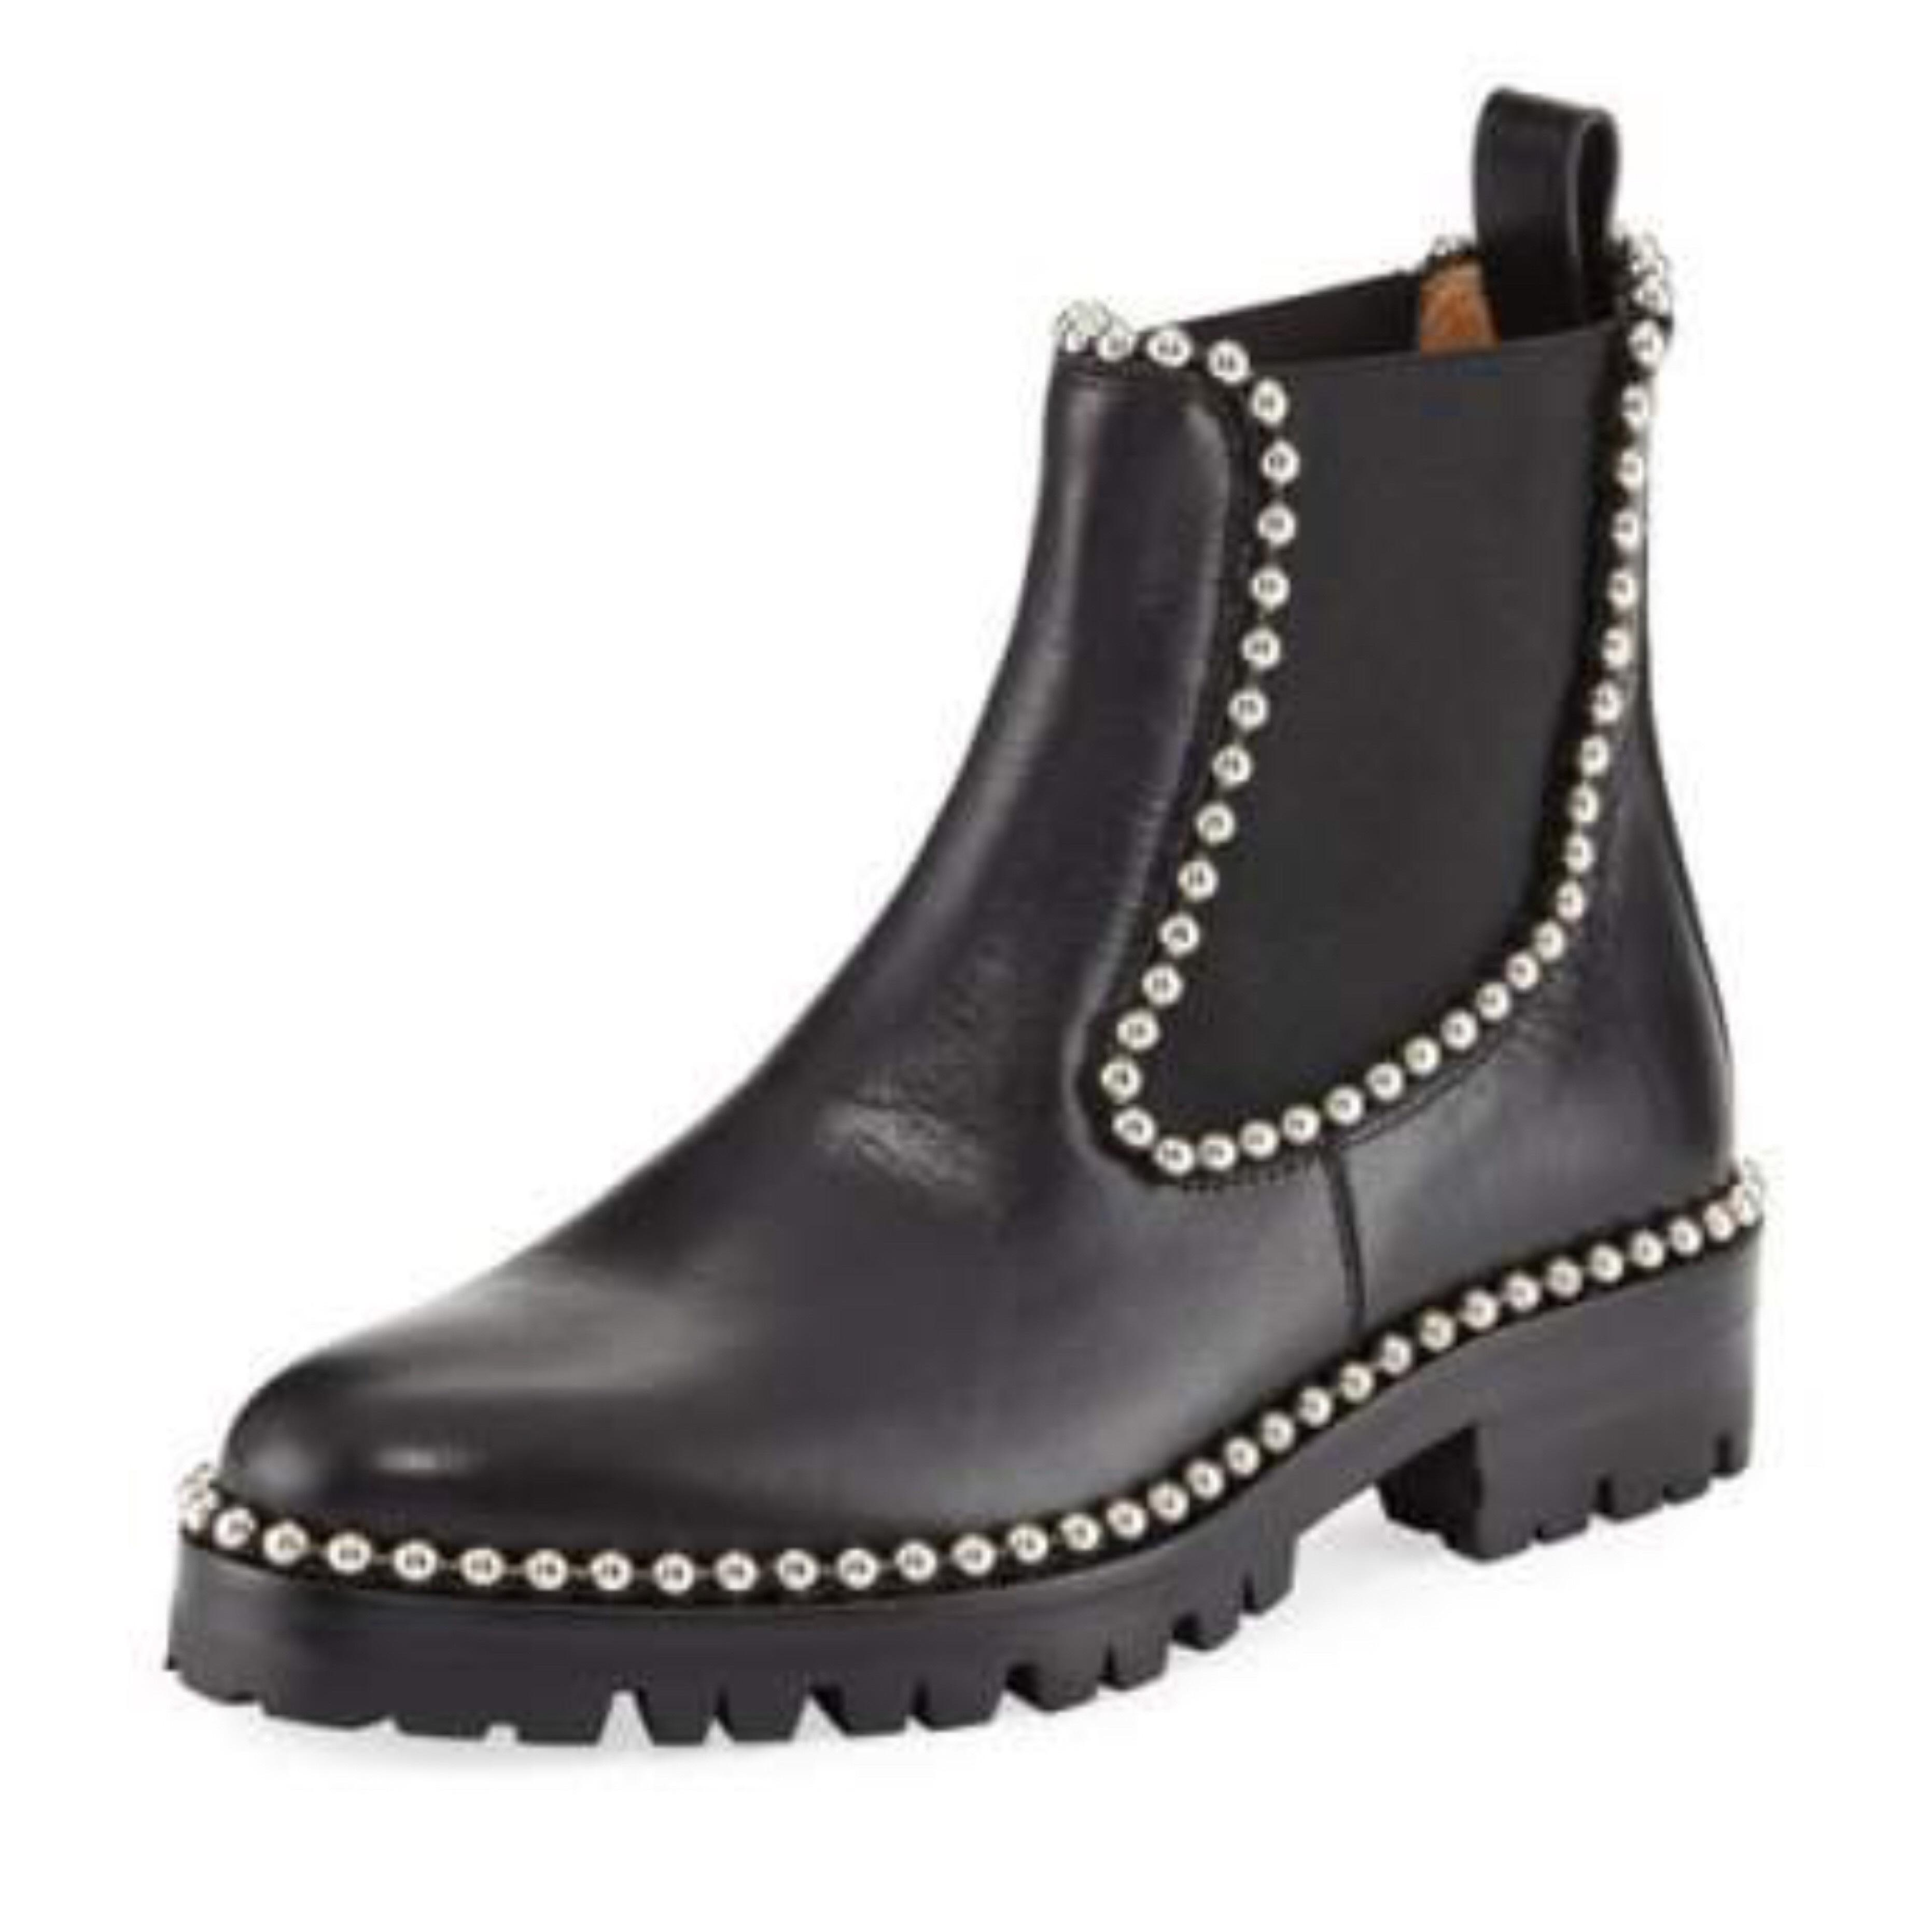 Alexander Wang Black Spencer Studded Chelsea Boots/Booties Size EU 35.5 (Approx. US 5.5) Regular (M, B)